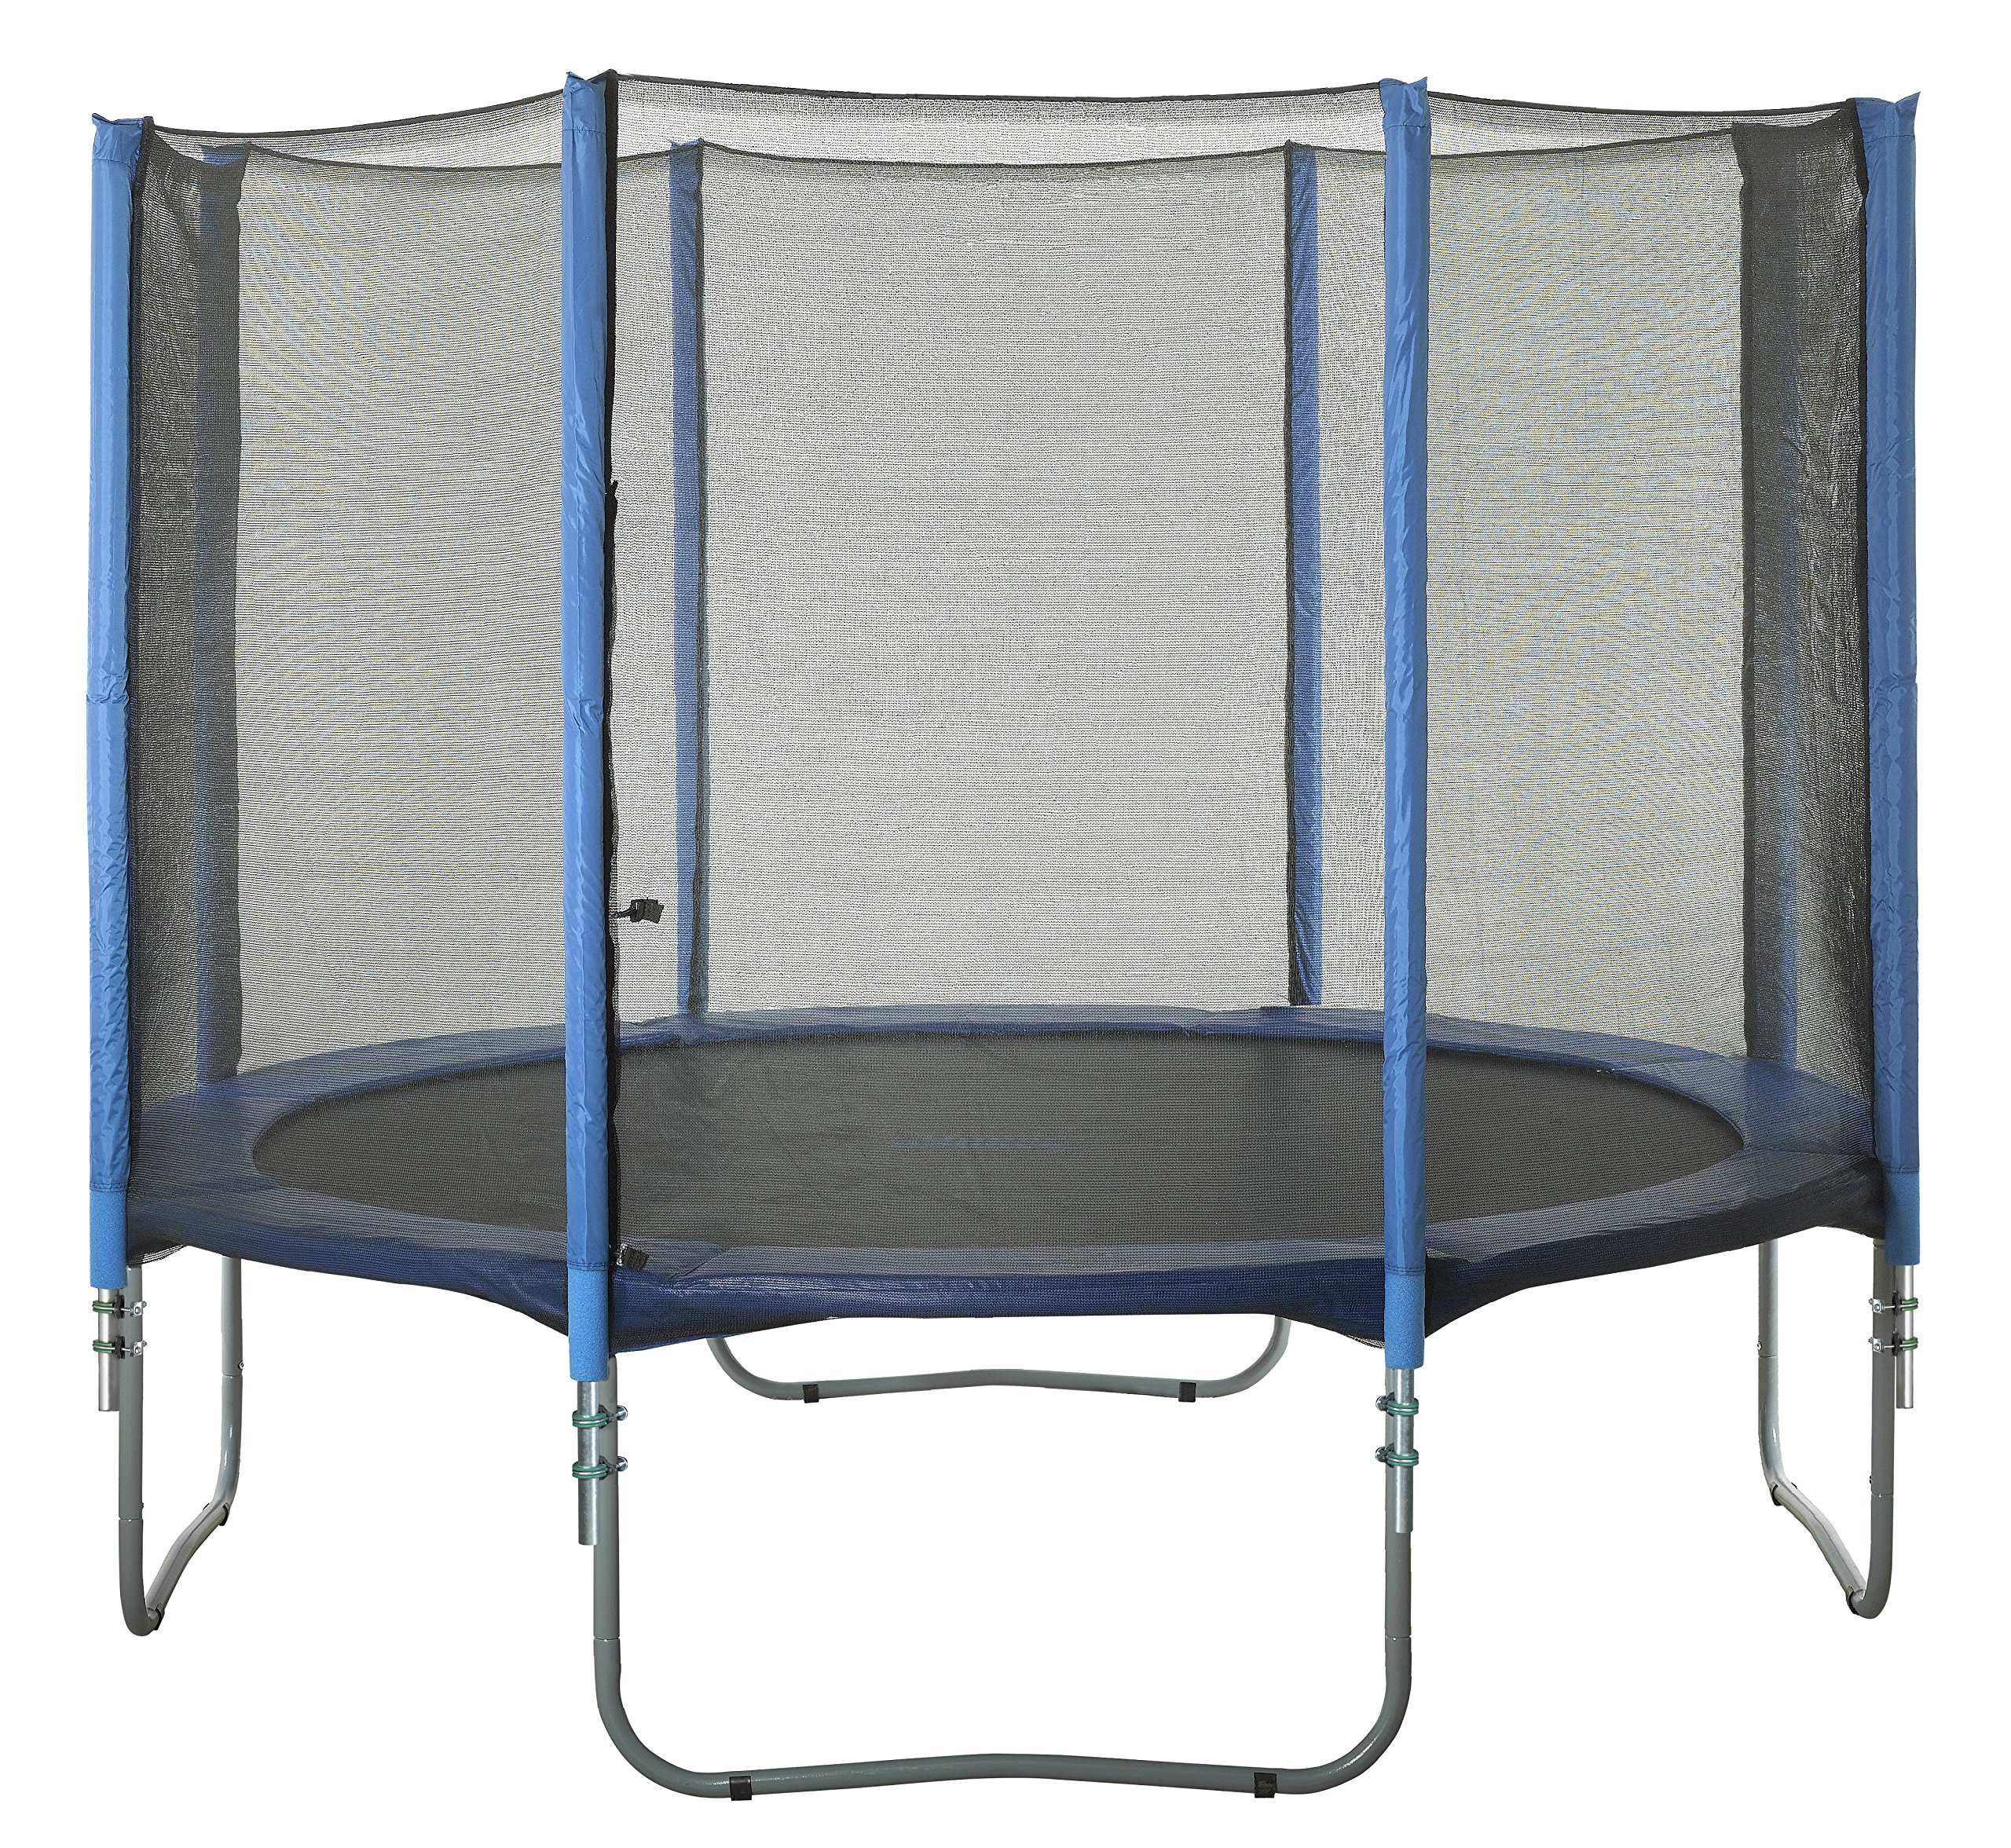 Upper Bounce 8 Pole Trampoline Enclosure Set to fit 15 FT. Trampoline Frames with Set of 4 or 8 W-Shaped Legs (Trampoline Not Included) by Upper Bounce (Image #7)